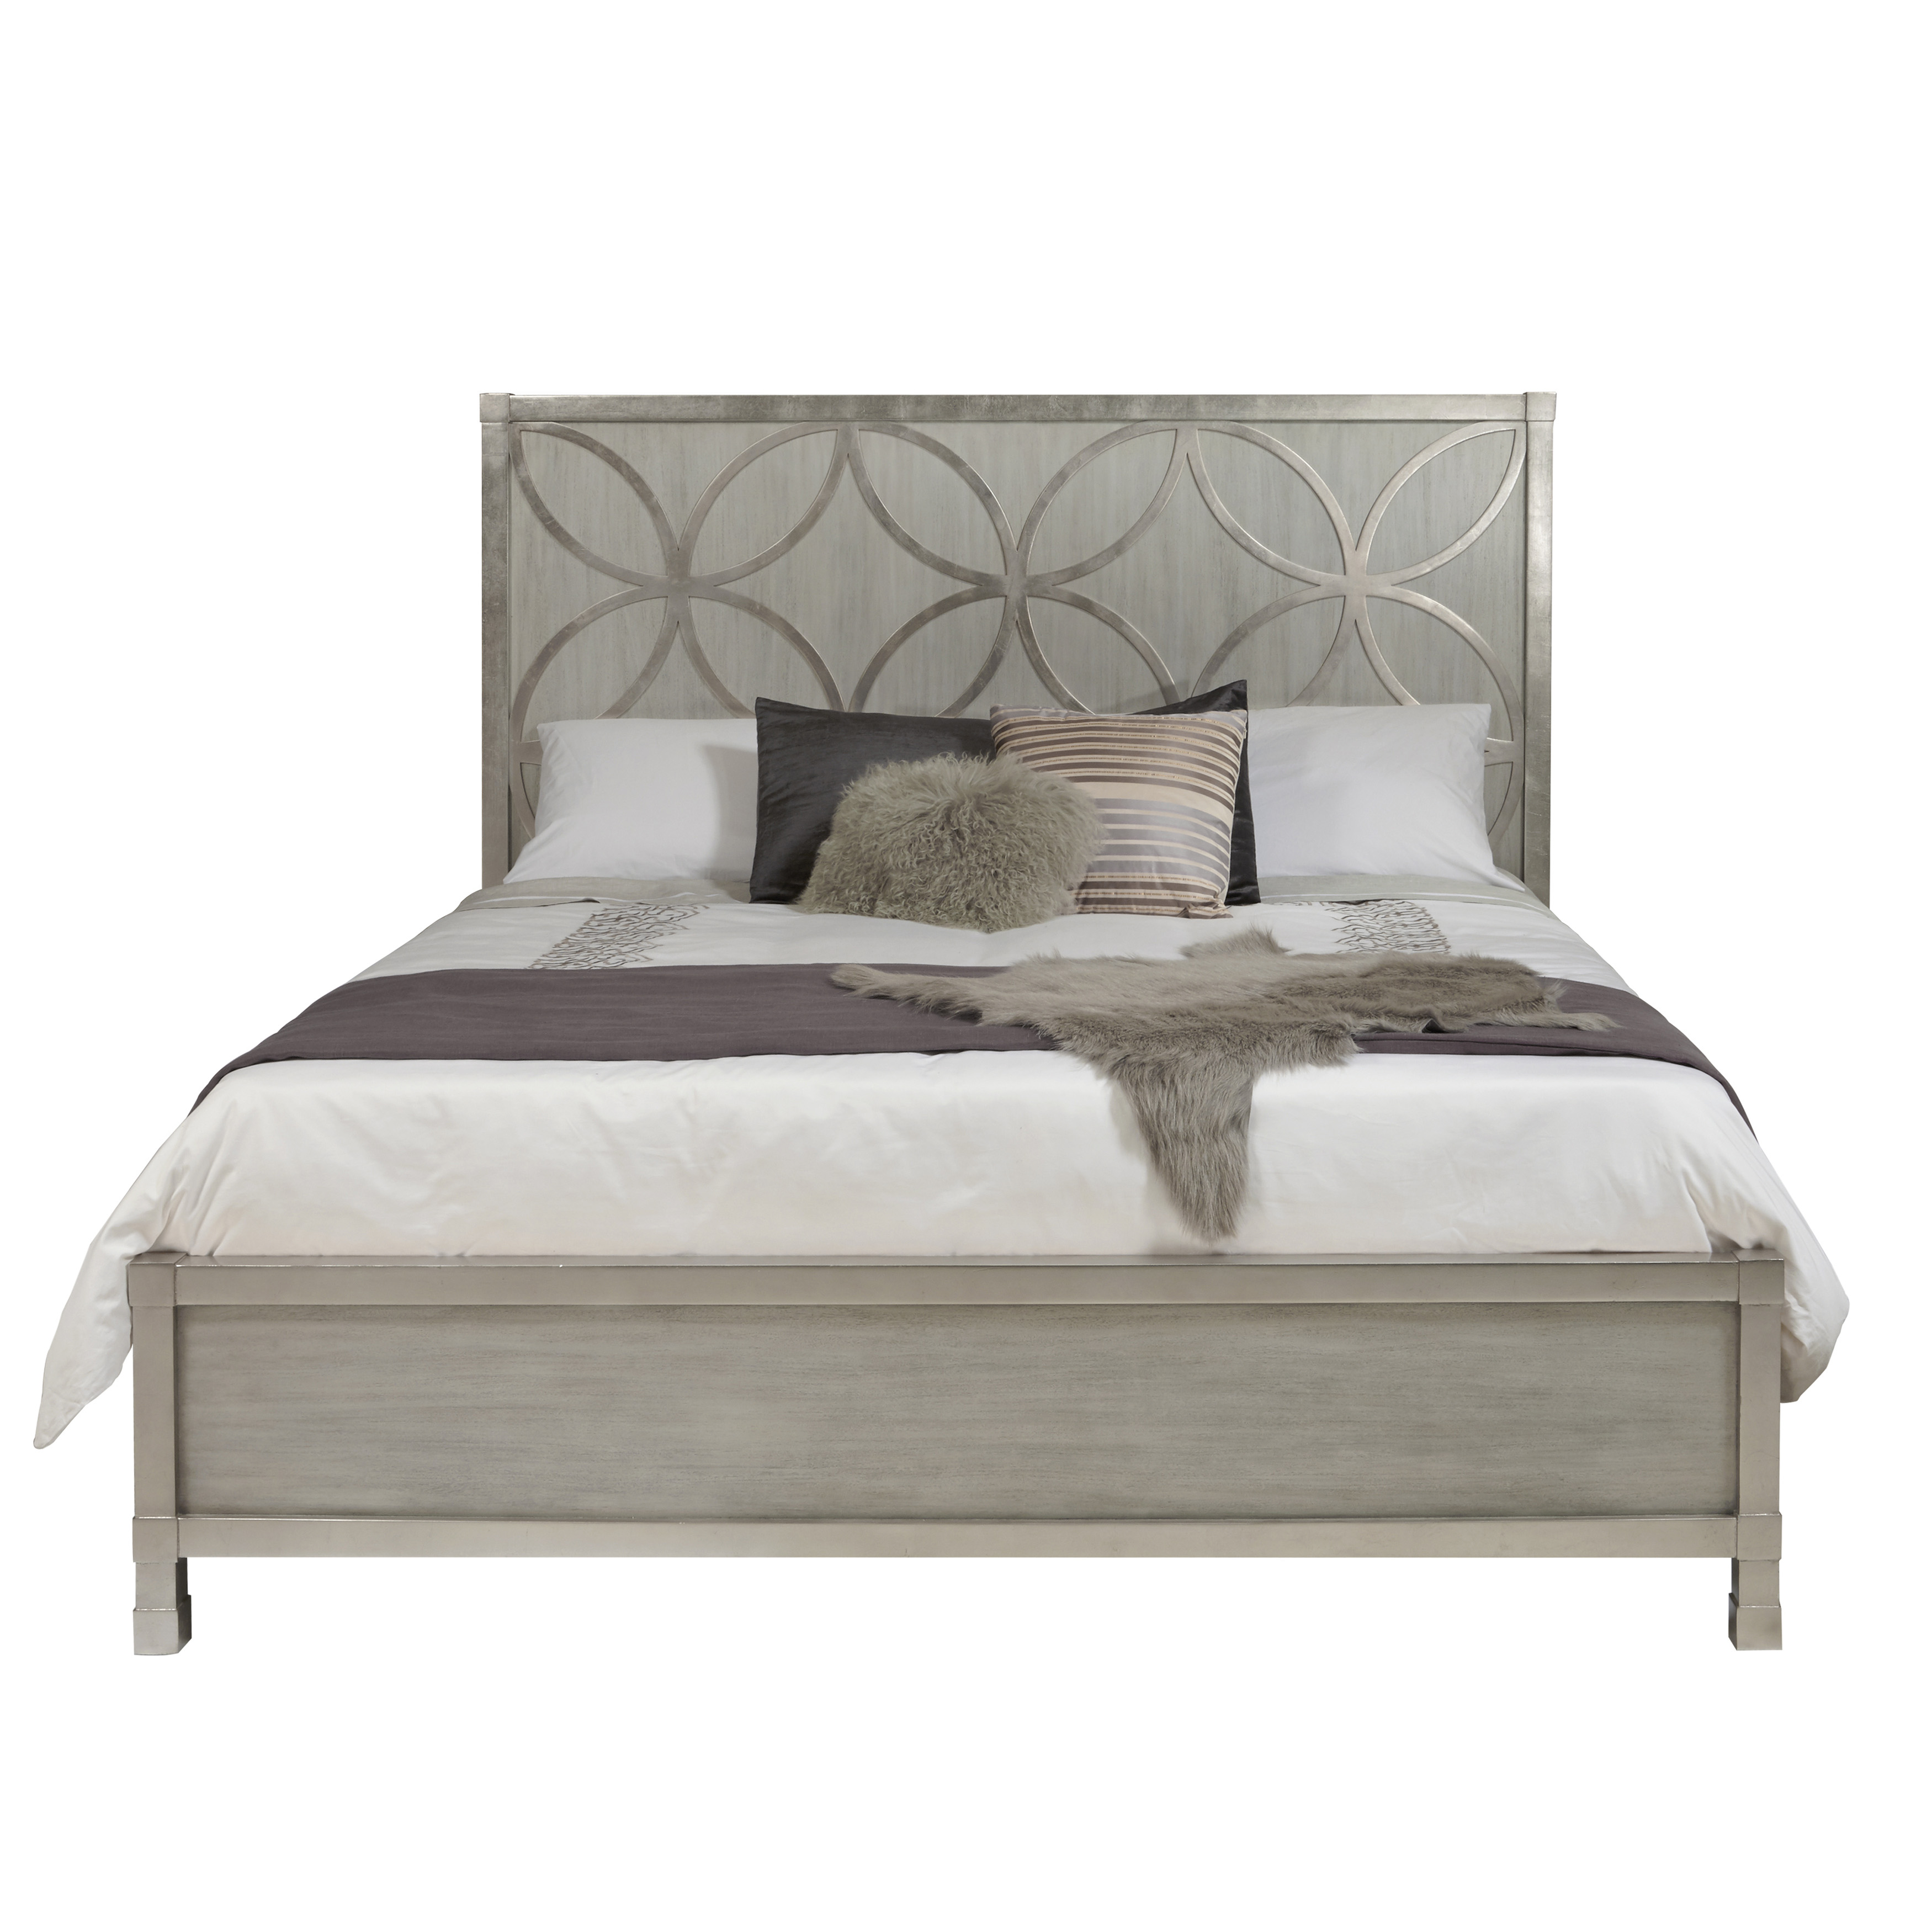 Silverleaf Quatrefoil Queen Bed Footboard